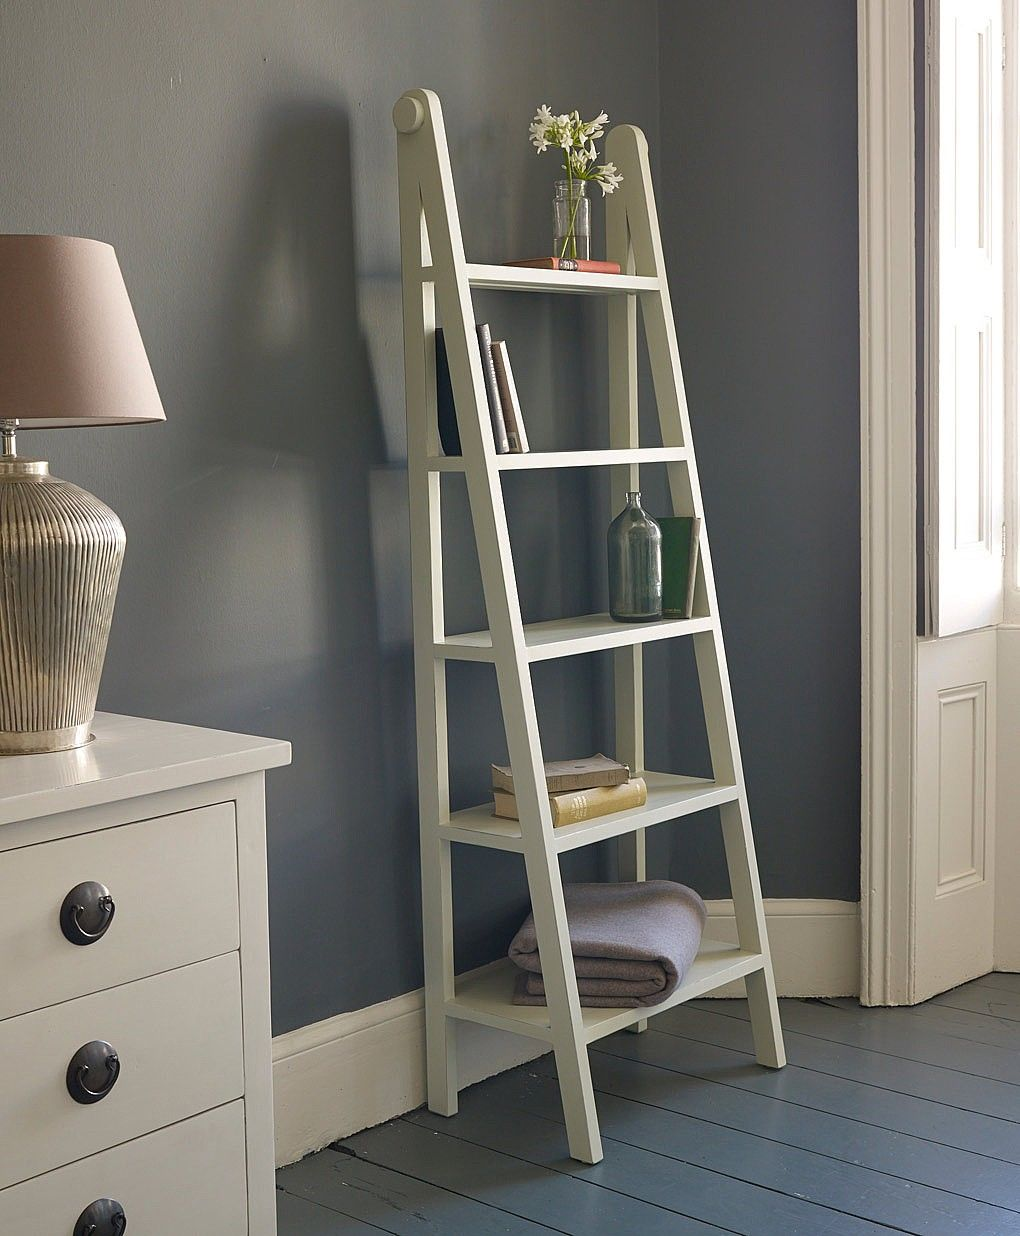 The Ladder Book Shelf Materials Used: Two Ladders And Wooden Planks  #homecues #